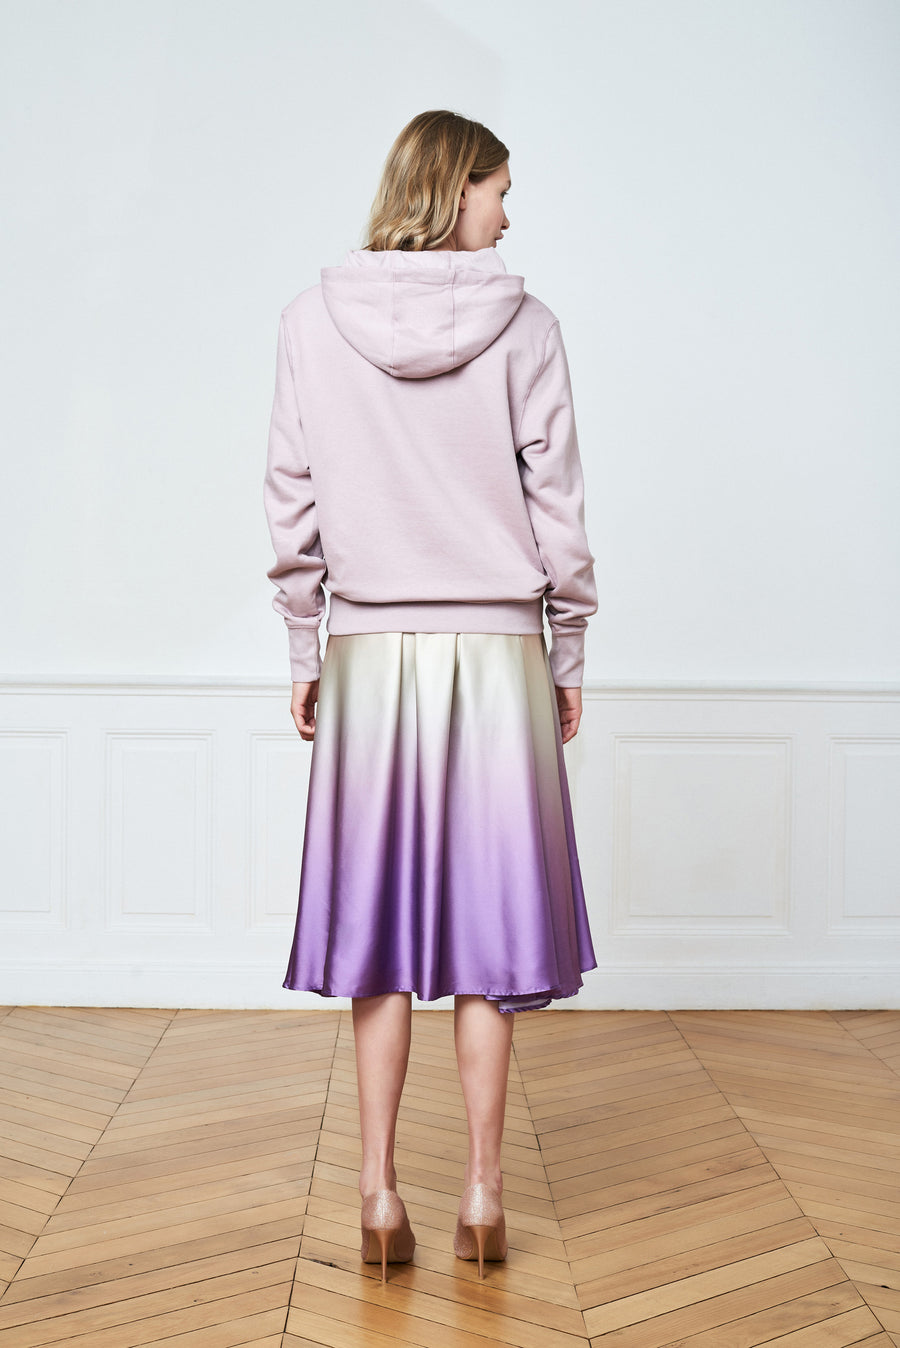 Brushed Graphic Sweatshirt & Gradient Over Knee Skirt